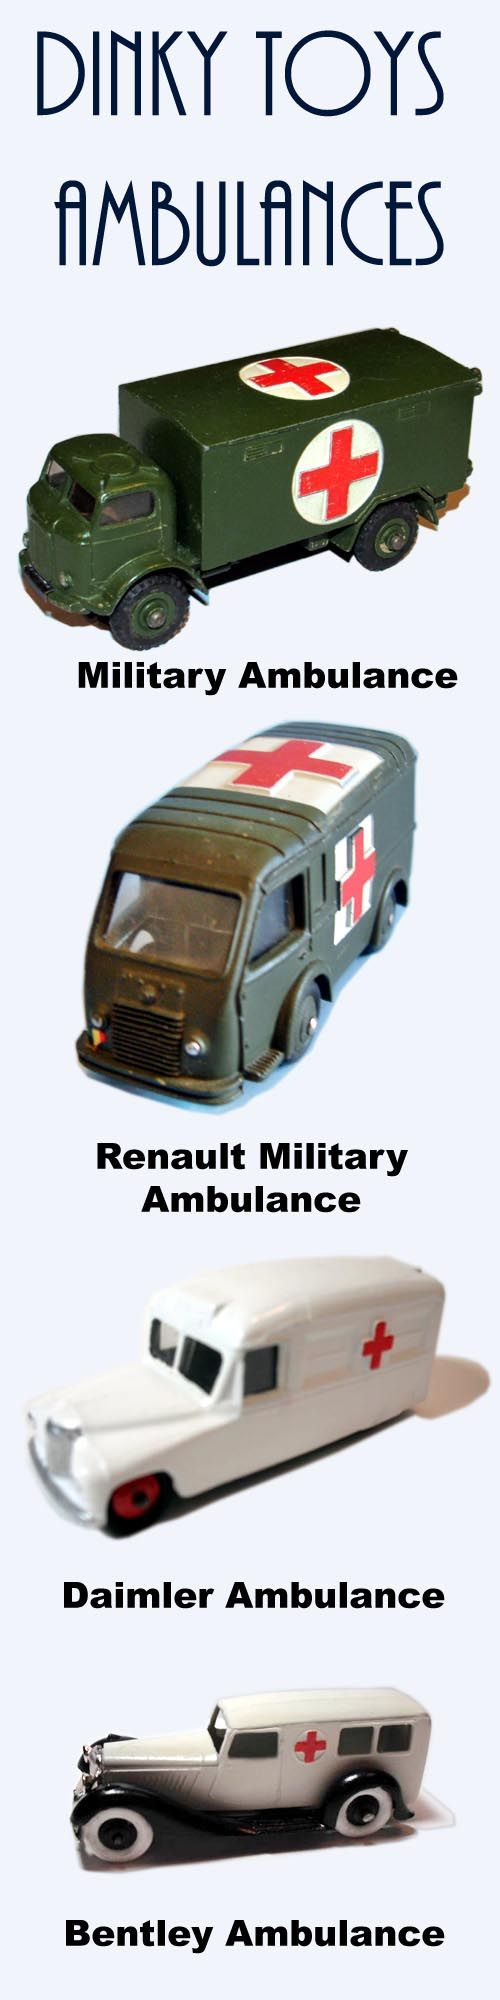 Dinky Toys Ambulance Diecast Cars: Military, Renault, Daimler, Bentley and More.